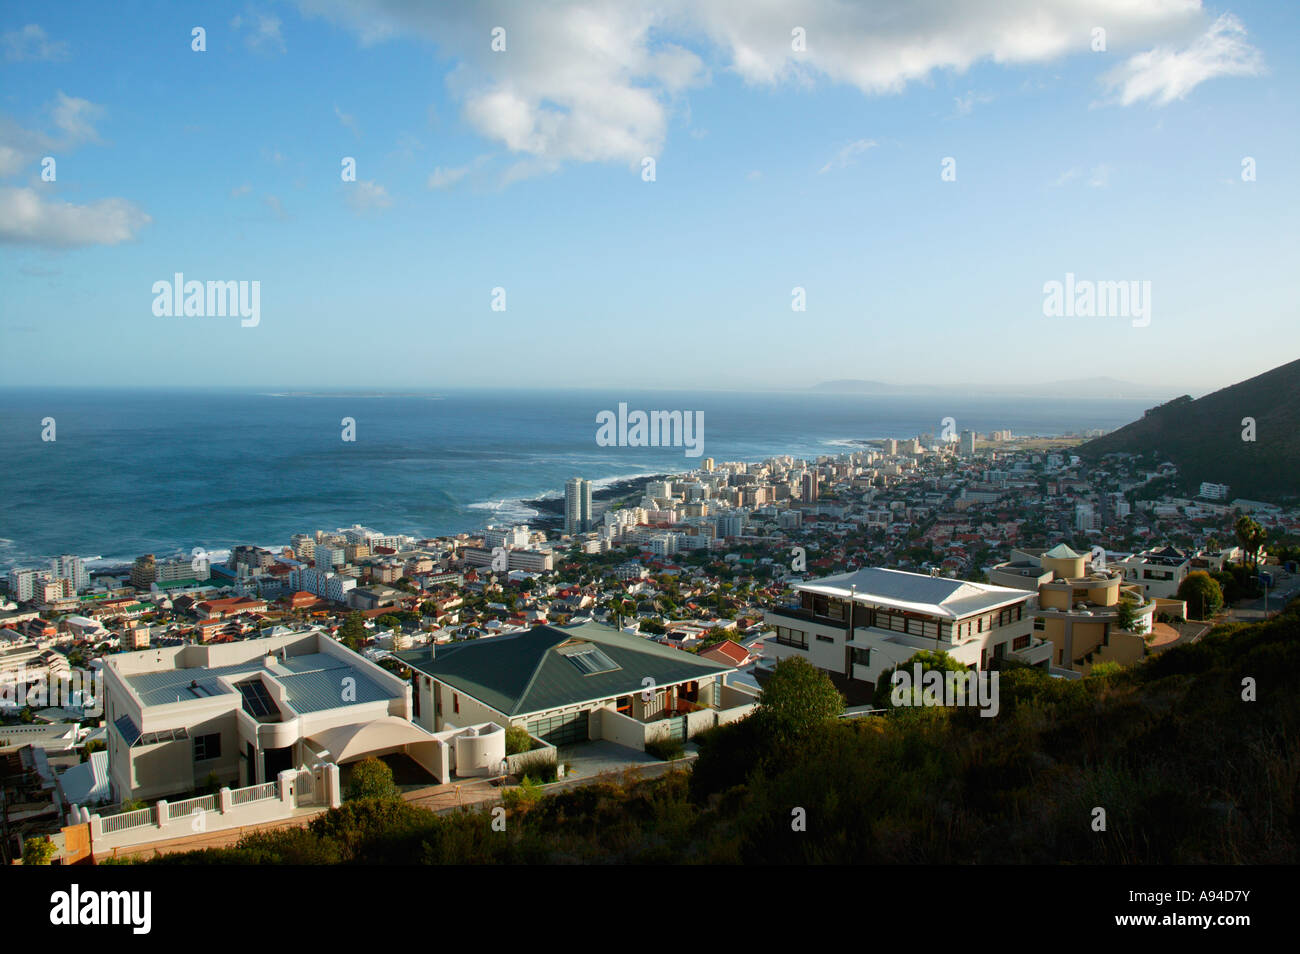 A view over the suburbs of Cape town Atlantic Seaboard towards the sea Cape Town Western Cape South Africa - Stock Image